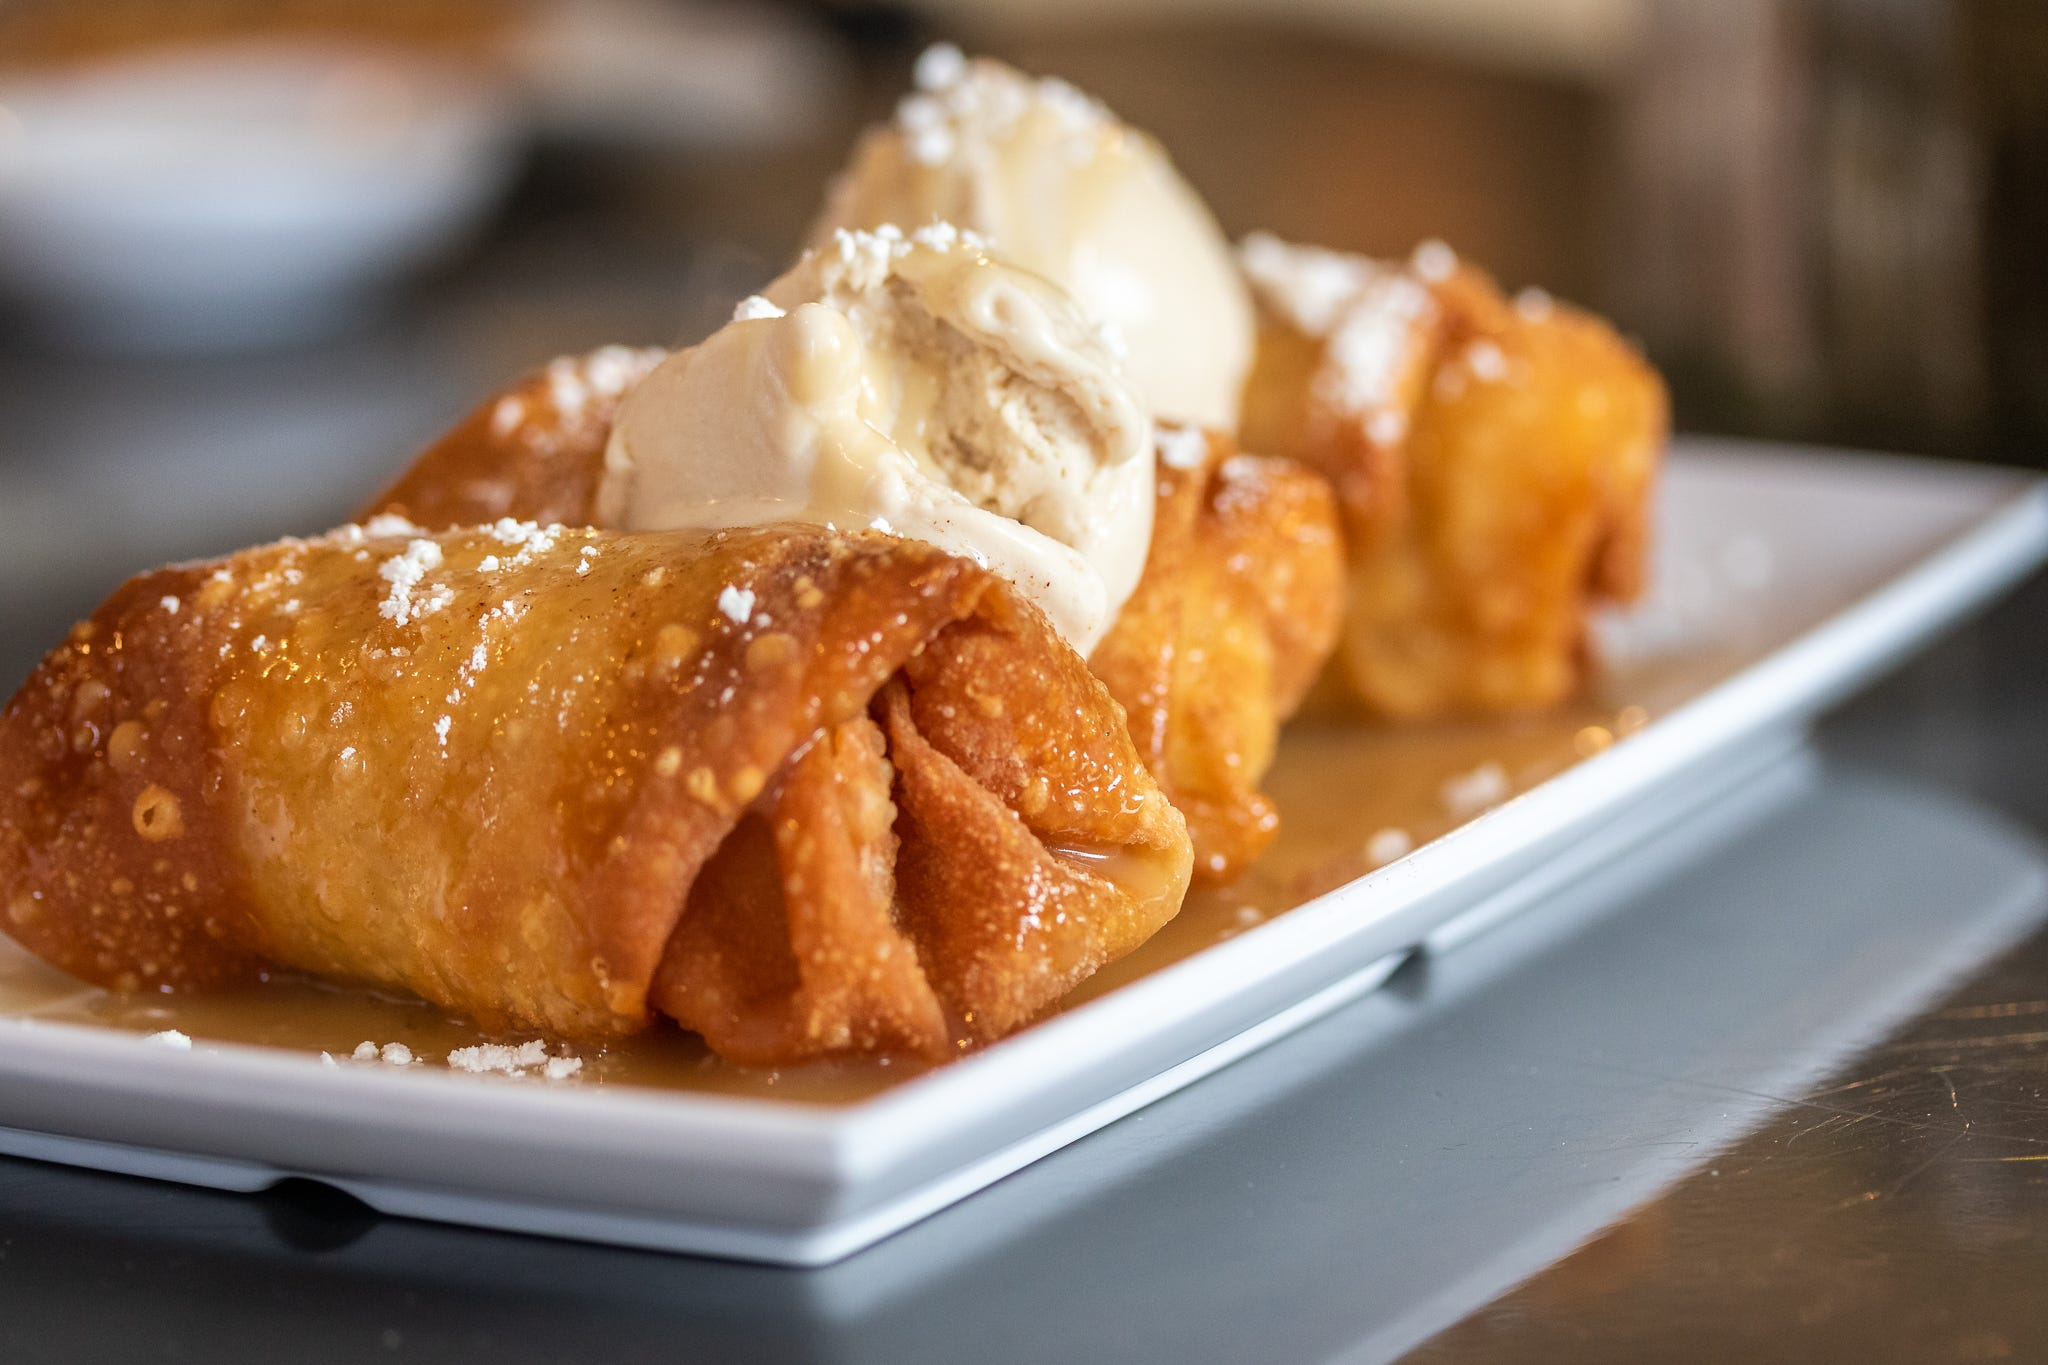 At NOLA Vegan in New Orleans, the dessert menu might include bananas Foster egg rolls.